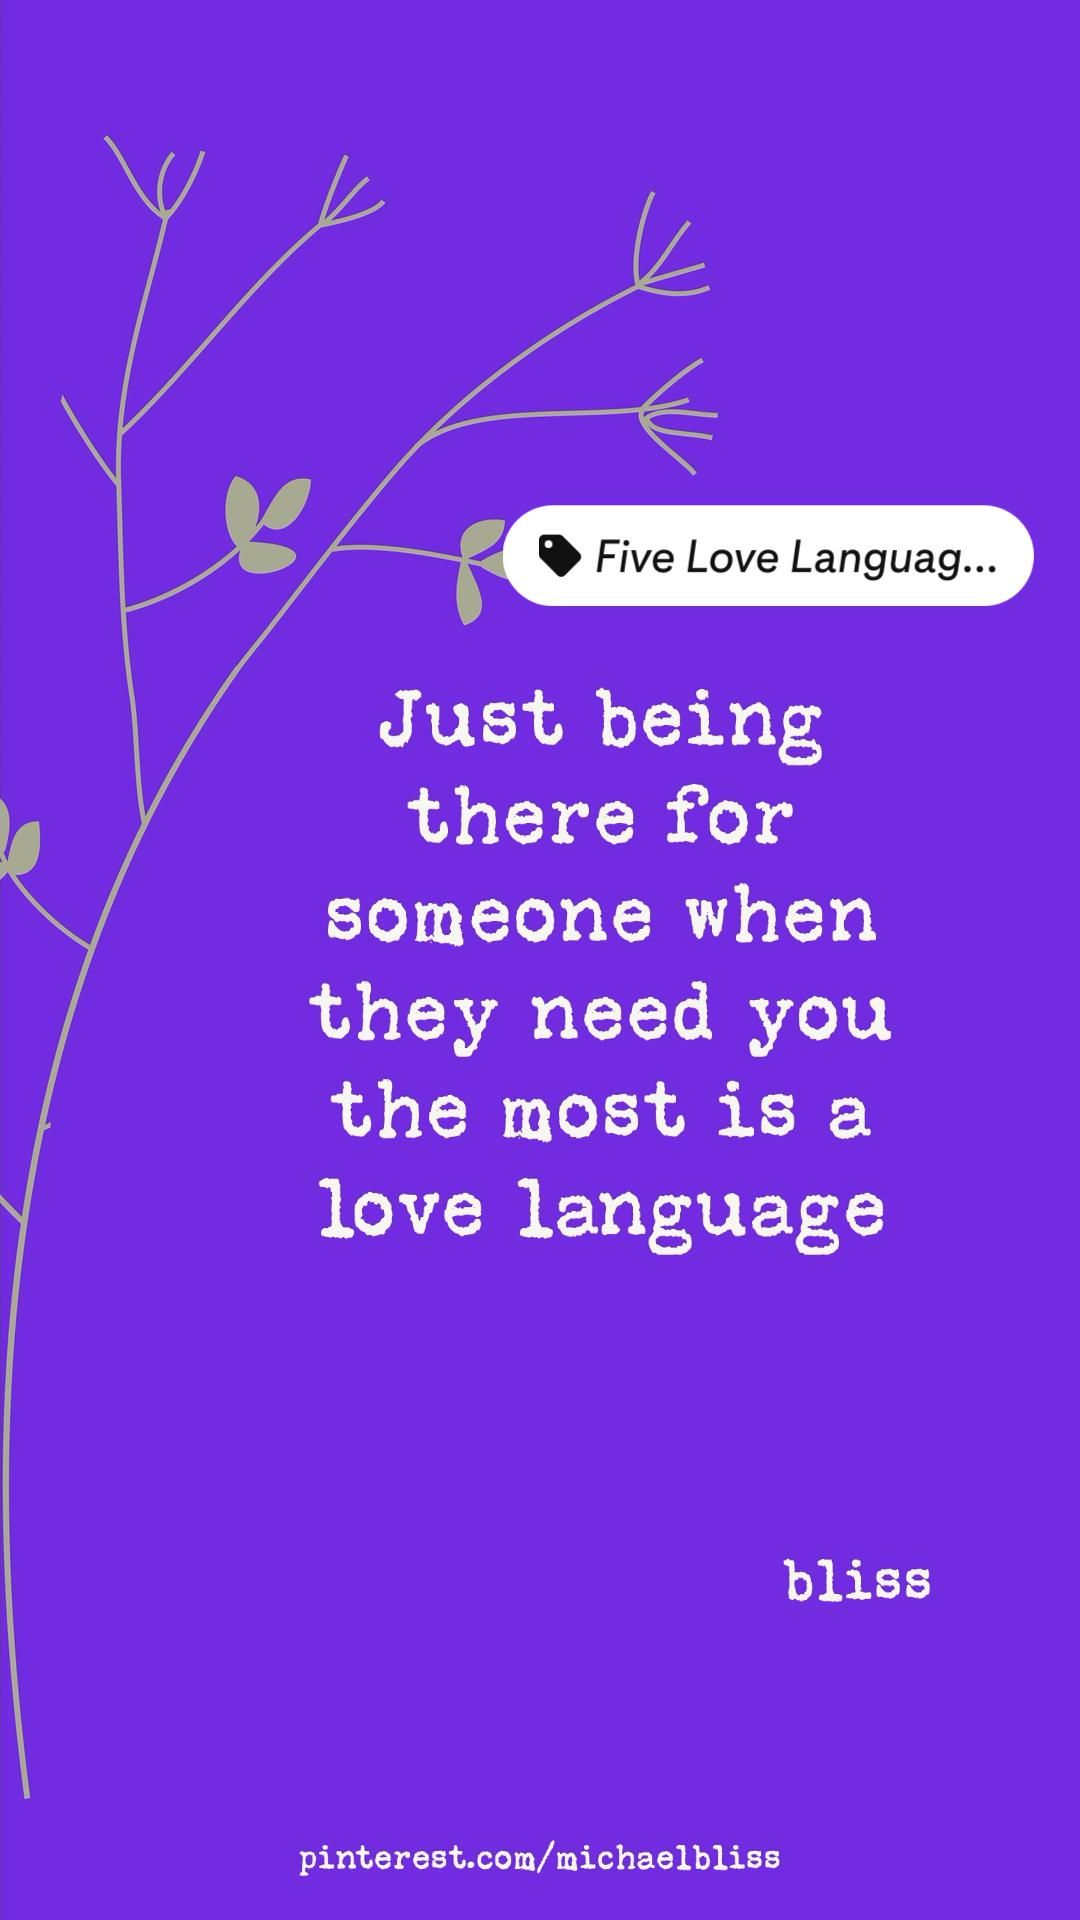 Just being there for someone when they need you the most is a love language